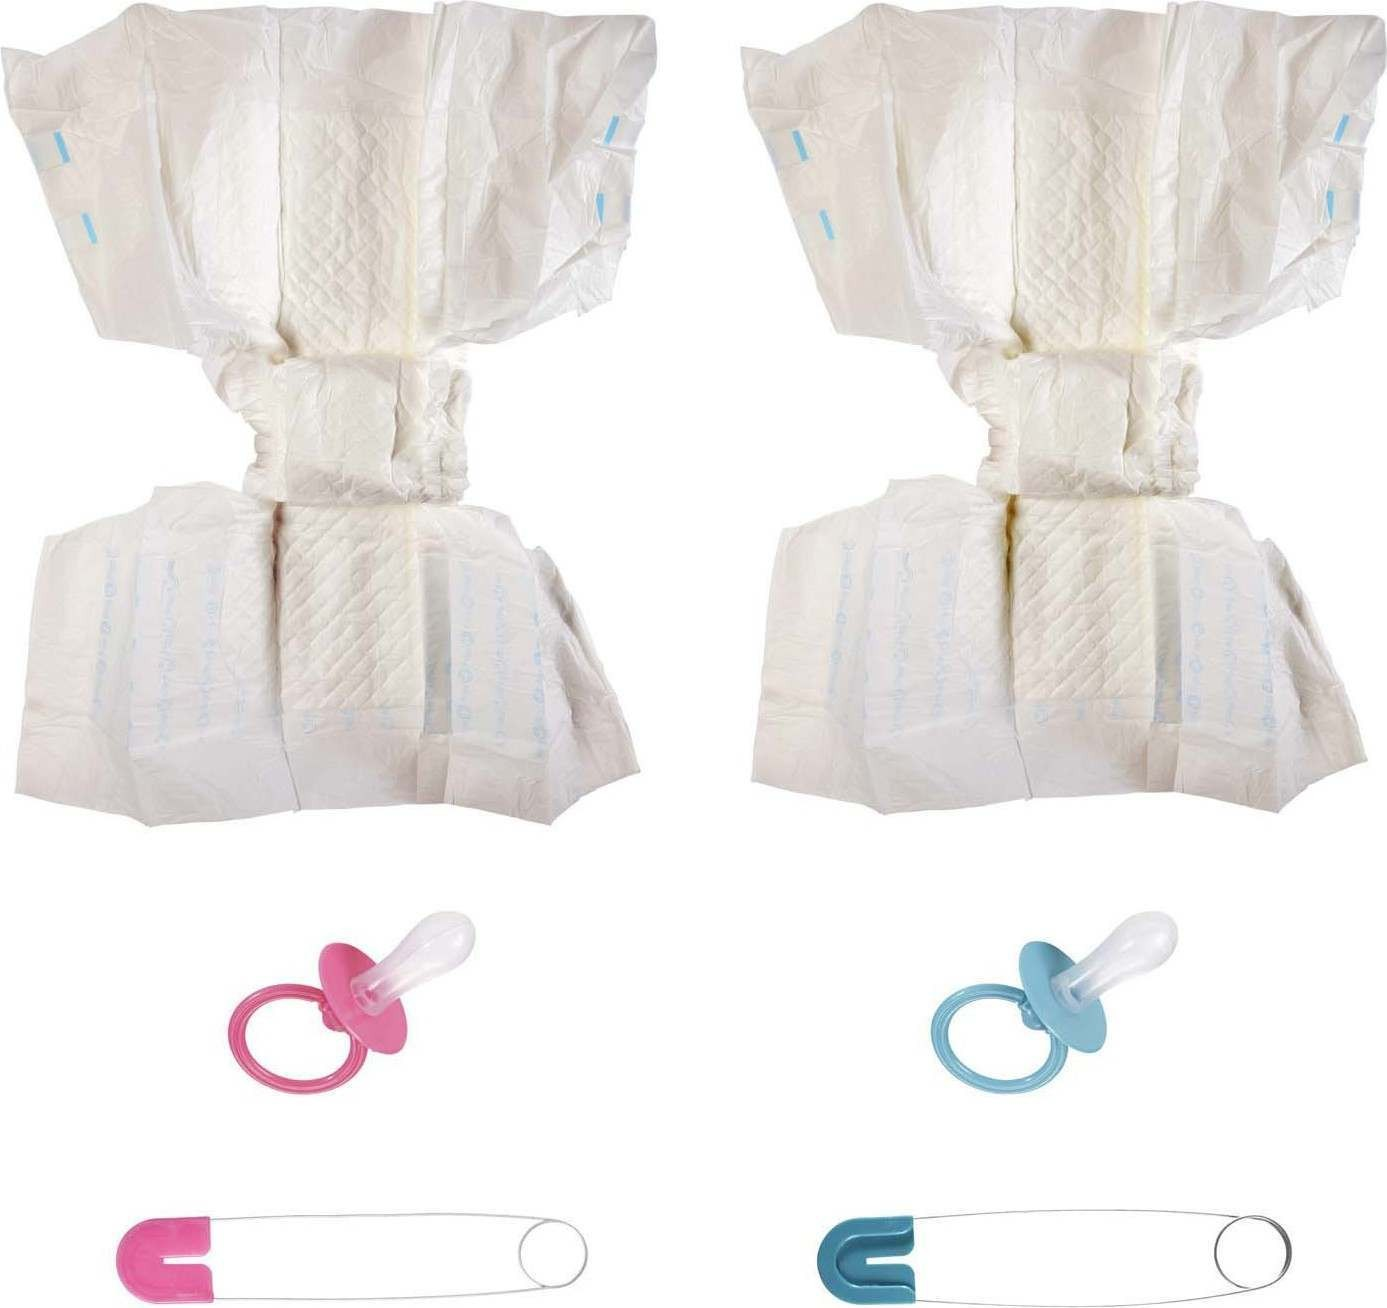 Baby Set (Diaper Pin Pacifier) Accessories